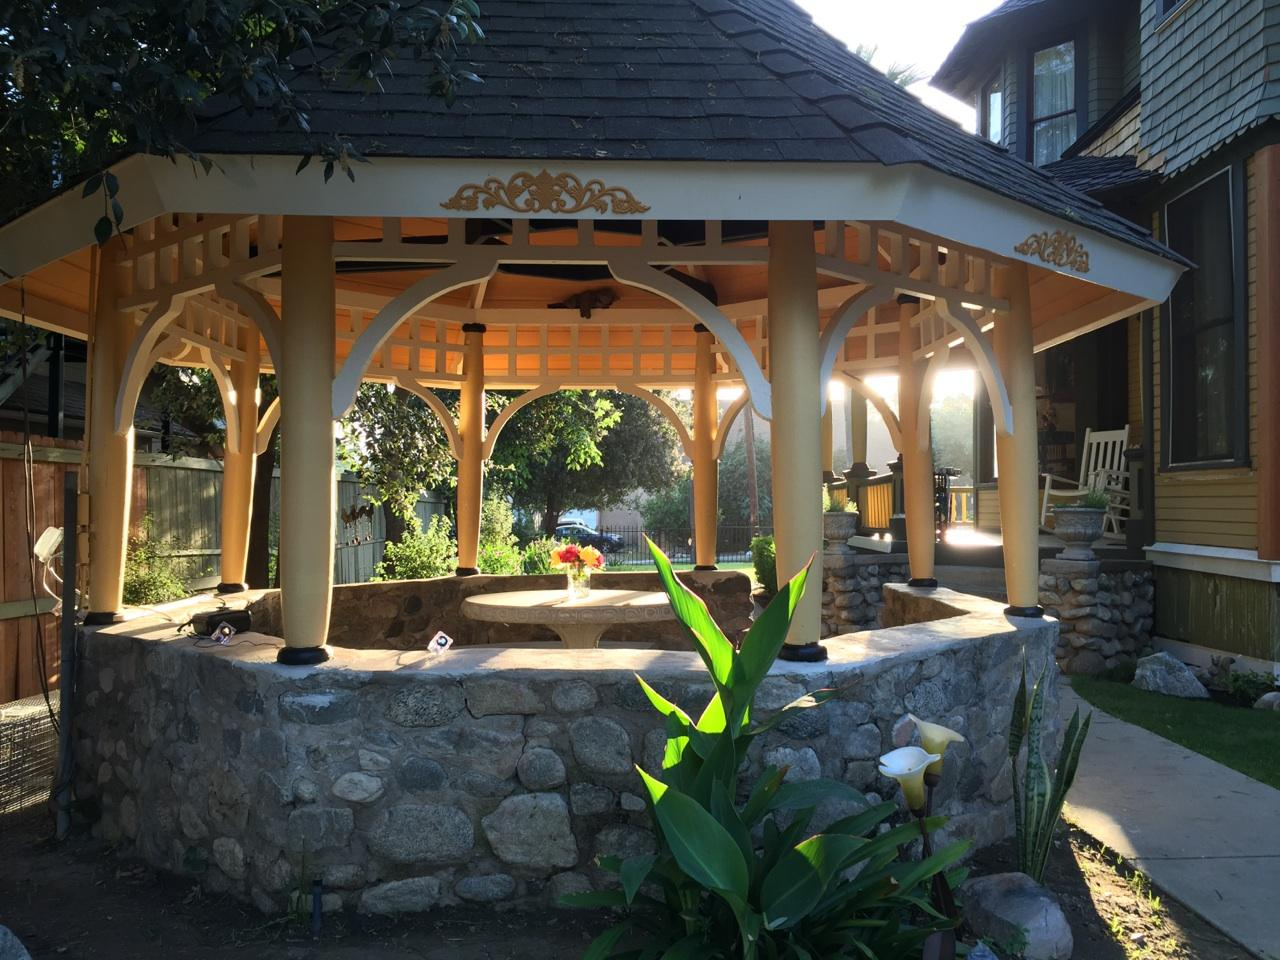 Probably the Oldest Gazebo in Pasadena known to the Historic Society